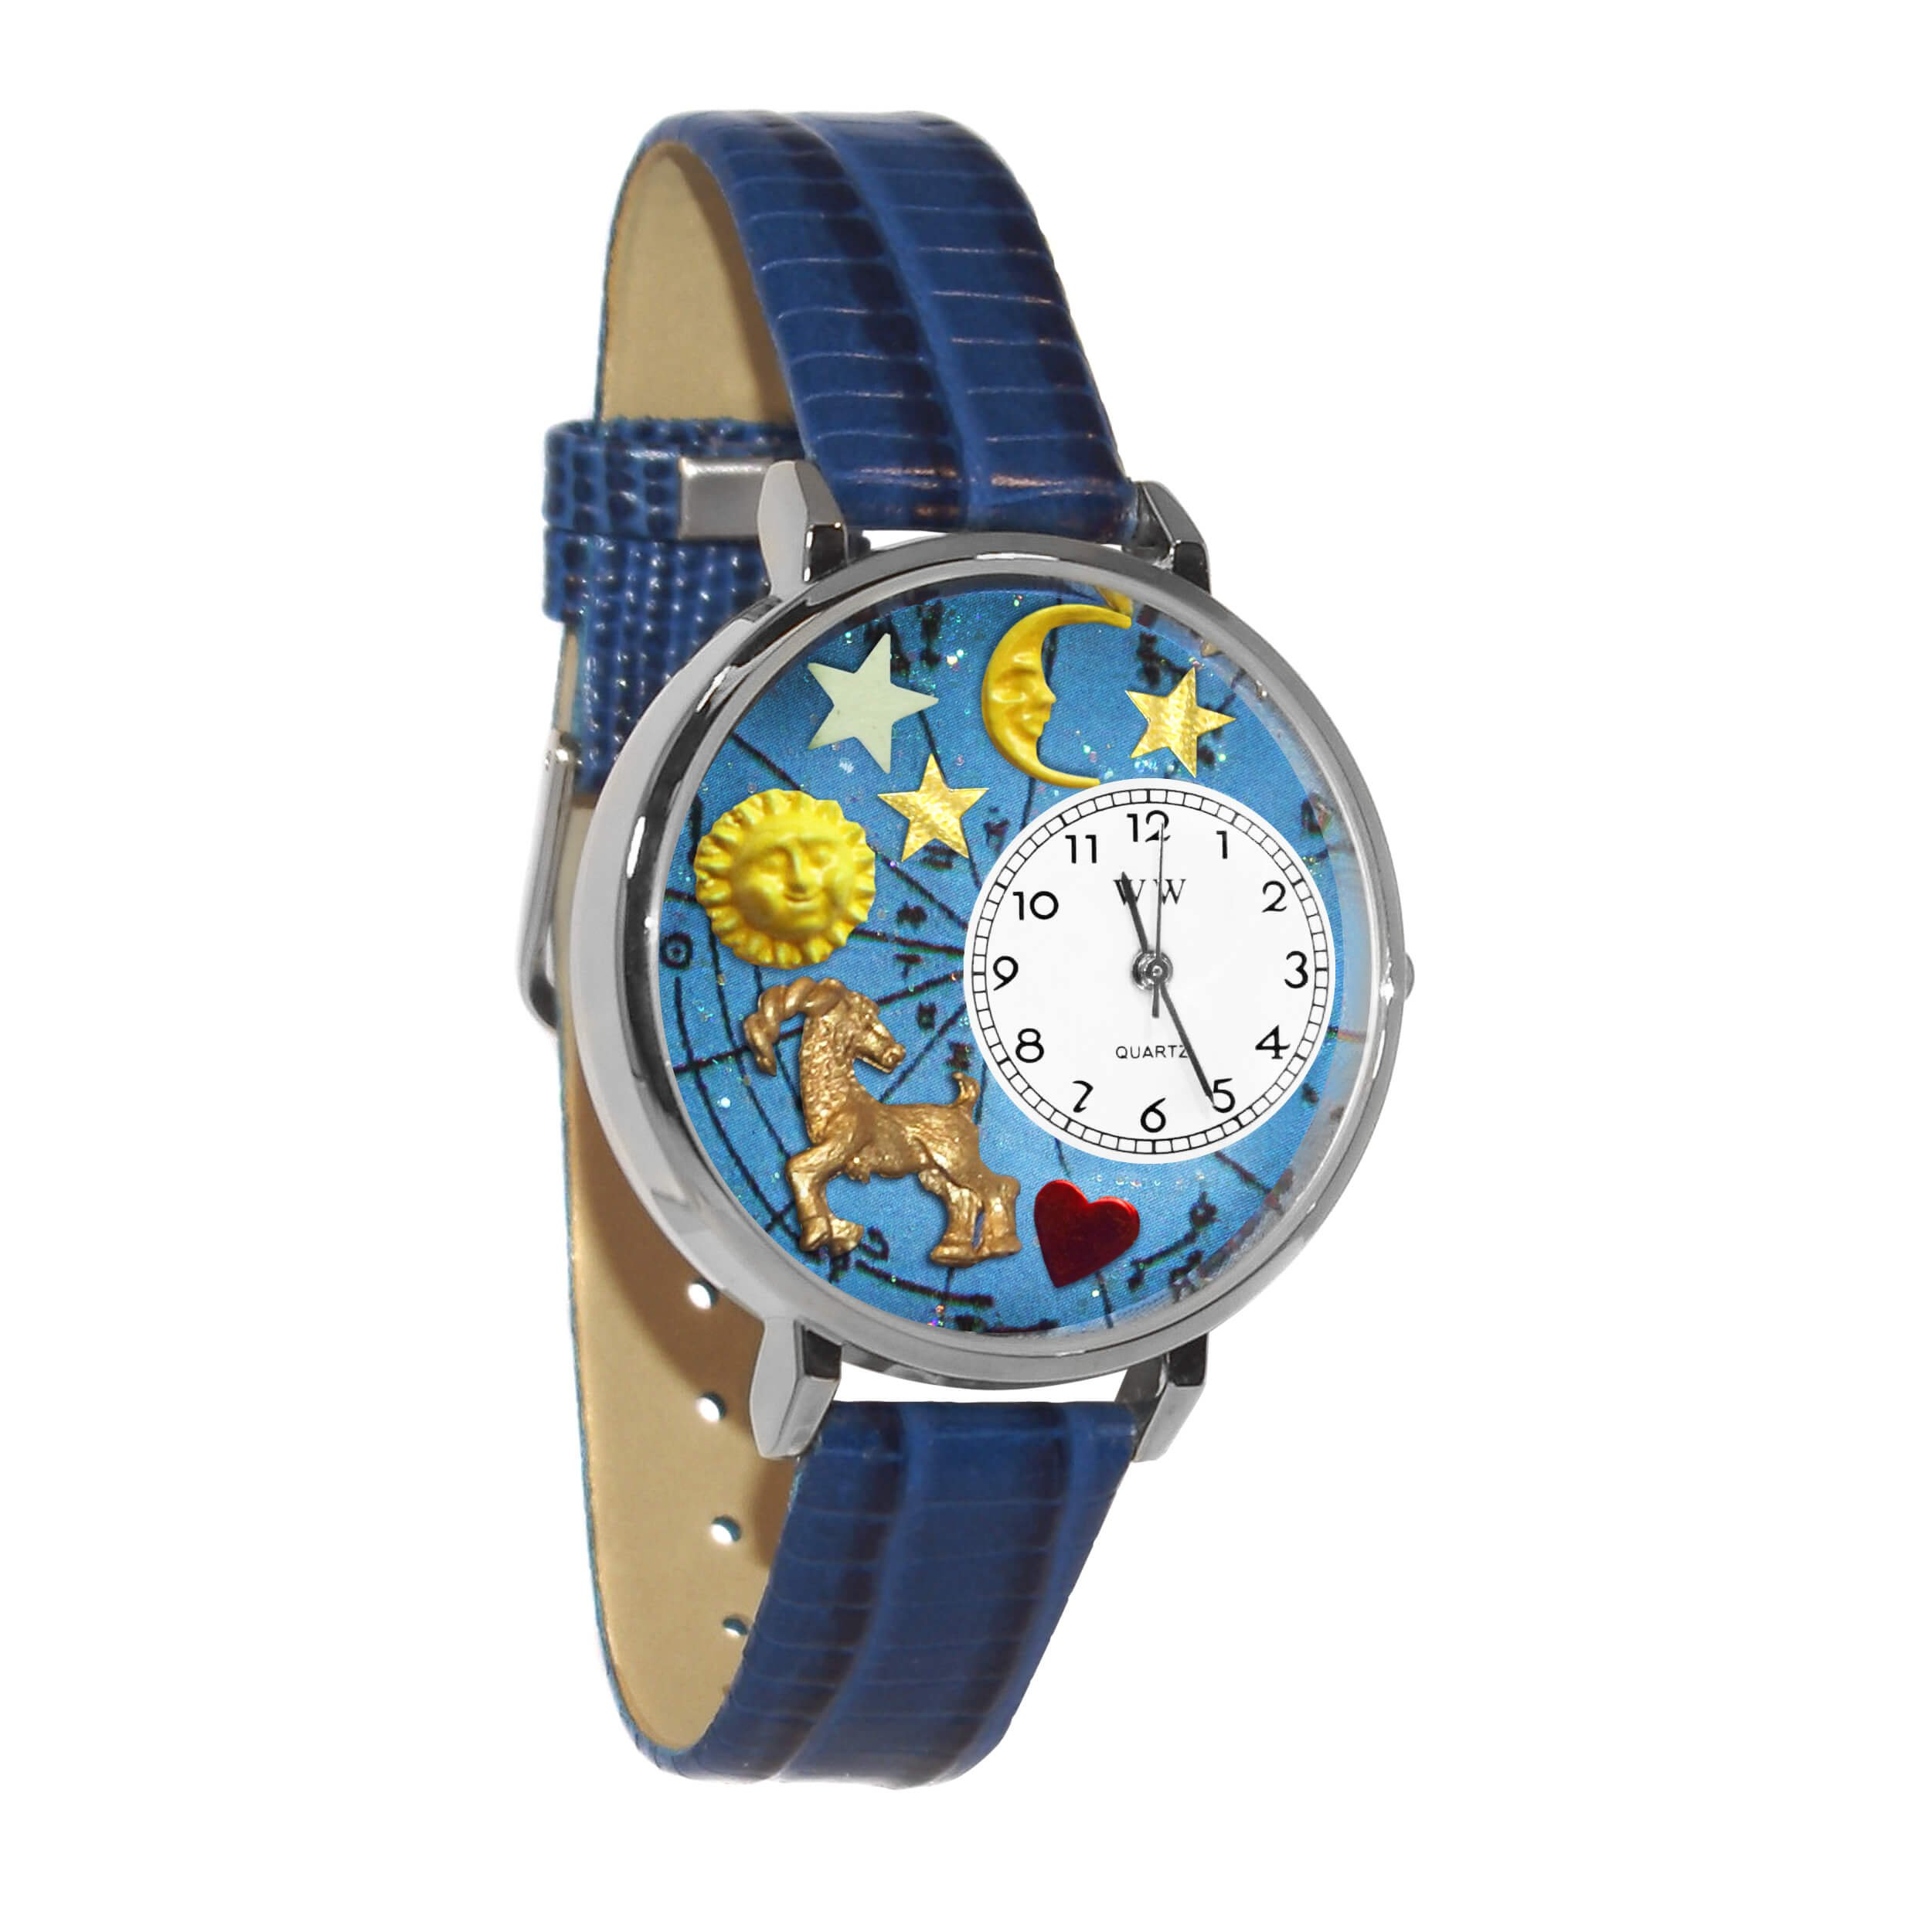 Whimsical Watches Unisex U1810005 Capricorn Royal Blue Leather Watch